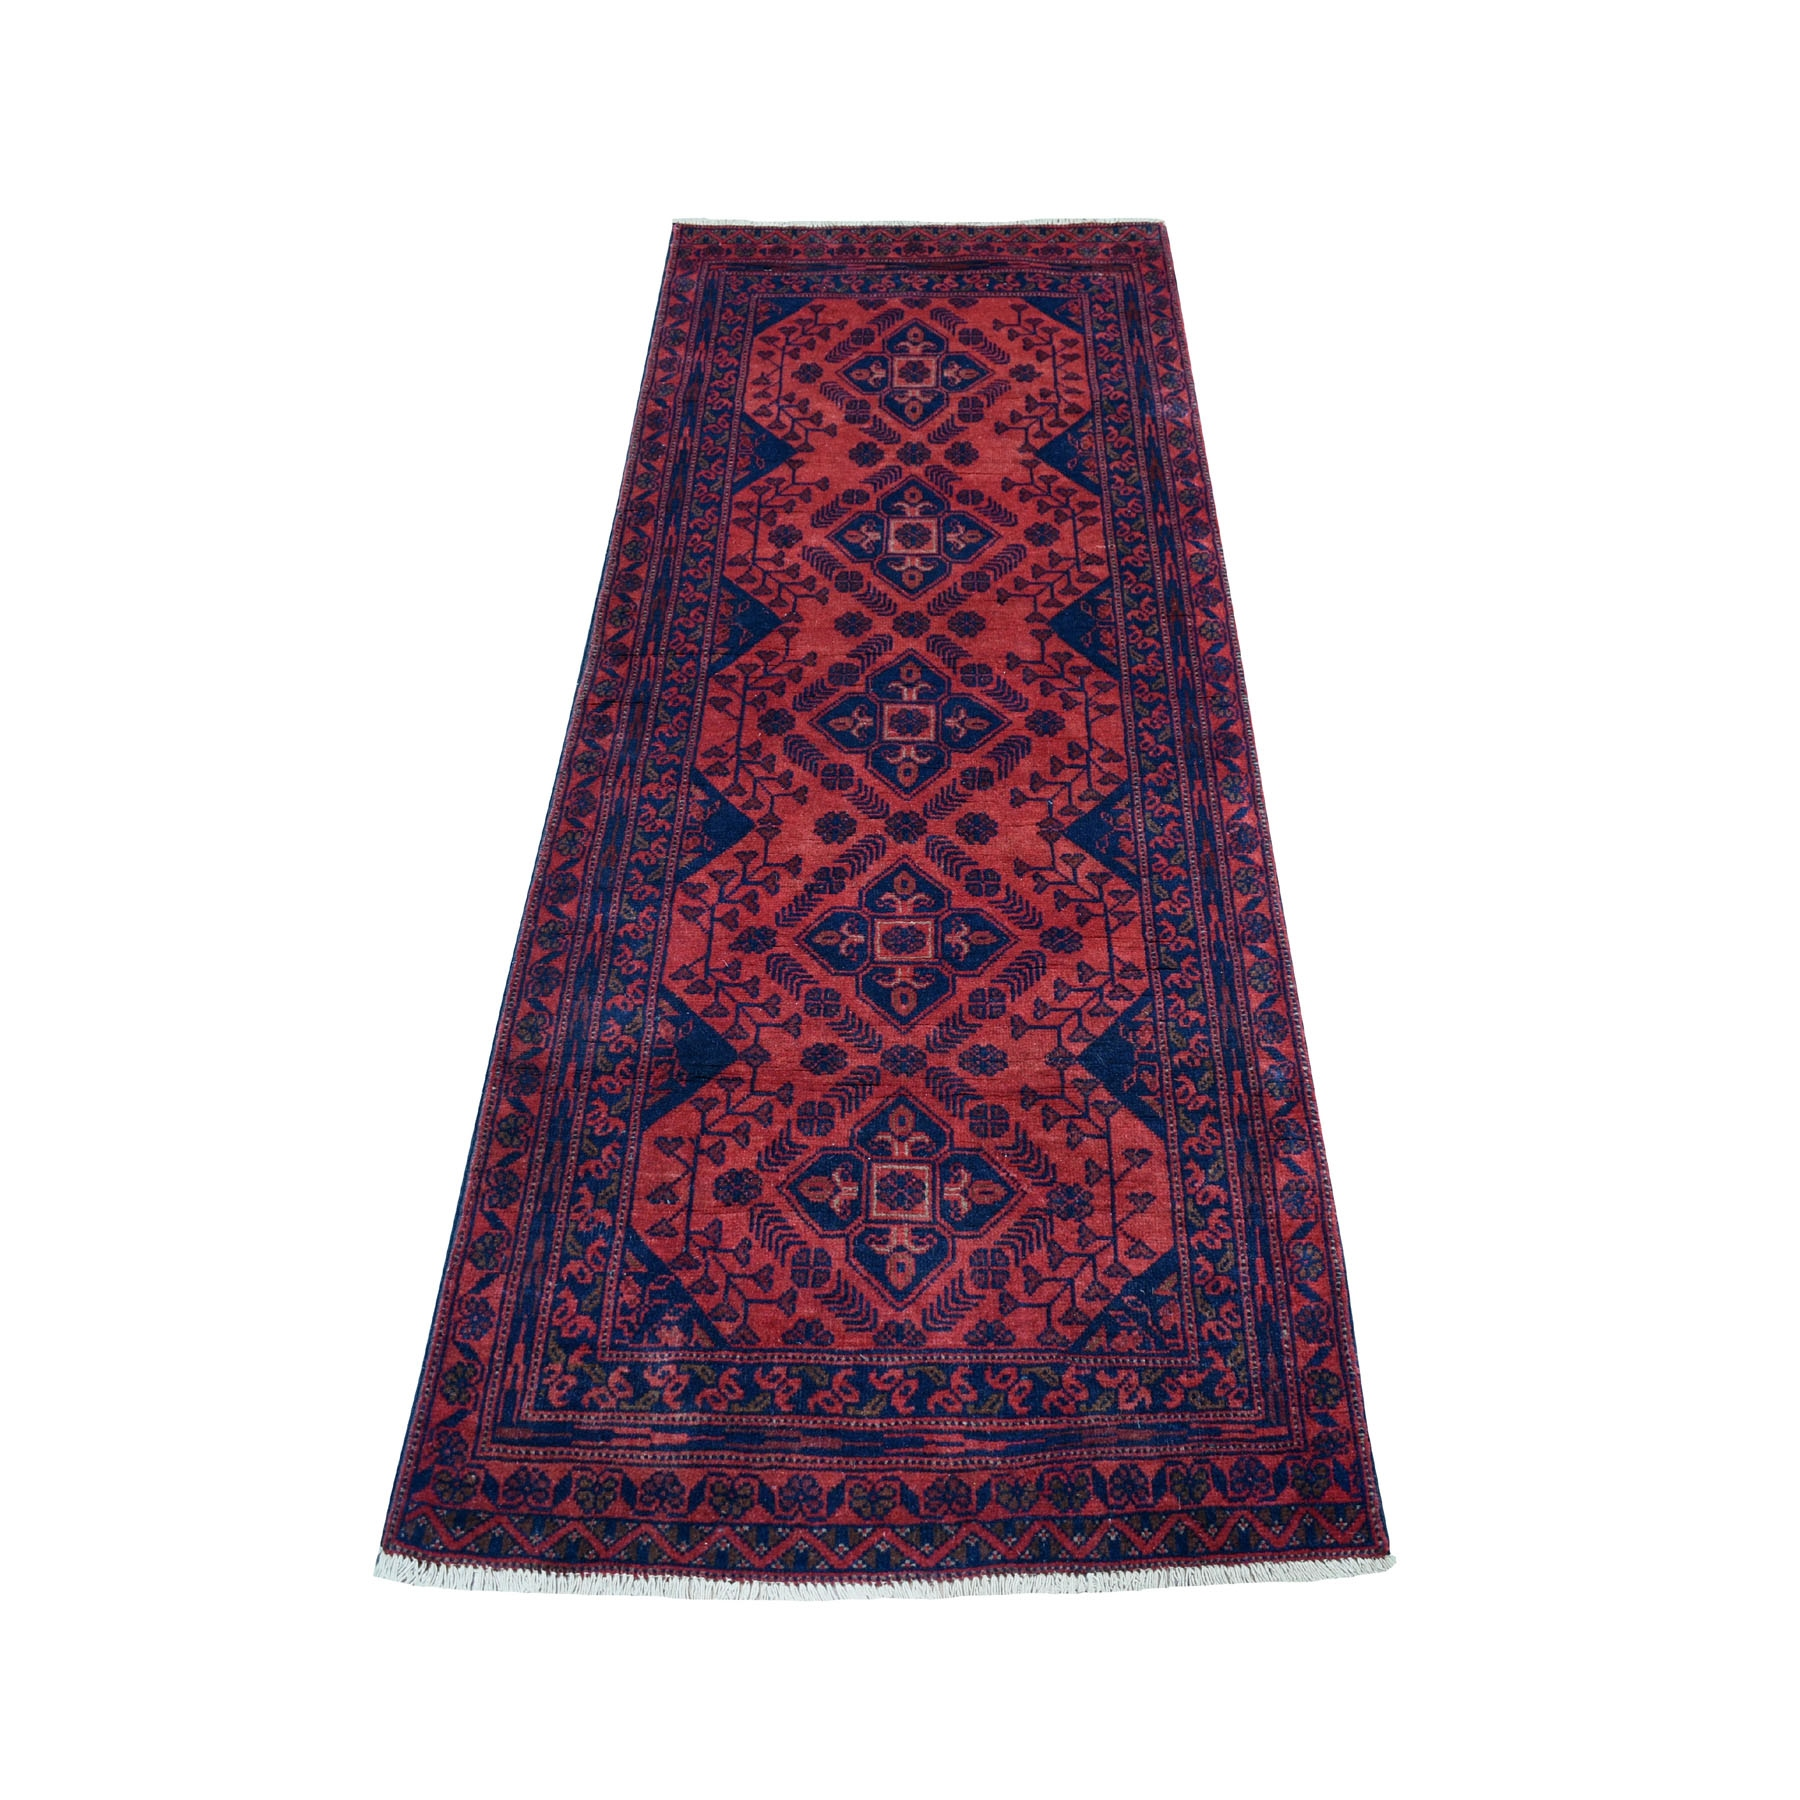 """2'6""""X6'7"""" Deep And Saturated Red Geometric Afghan Andkhoy Runner Pure Wool Hand Knotted Oriental Rug moaeceee"""